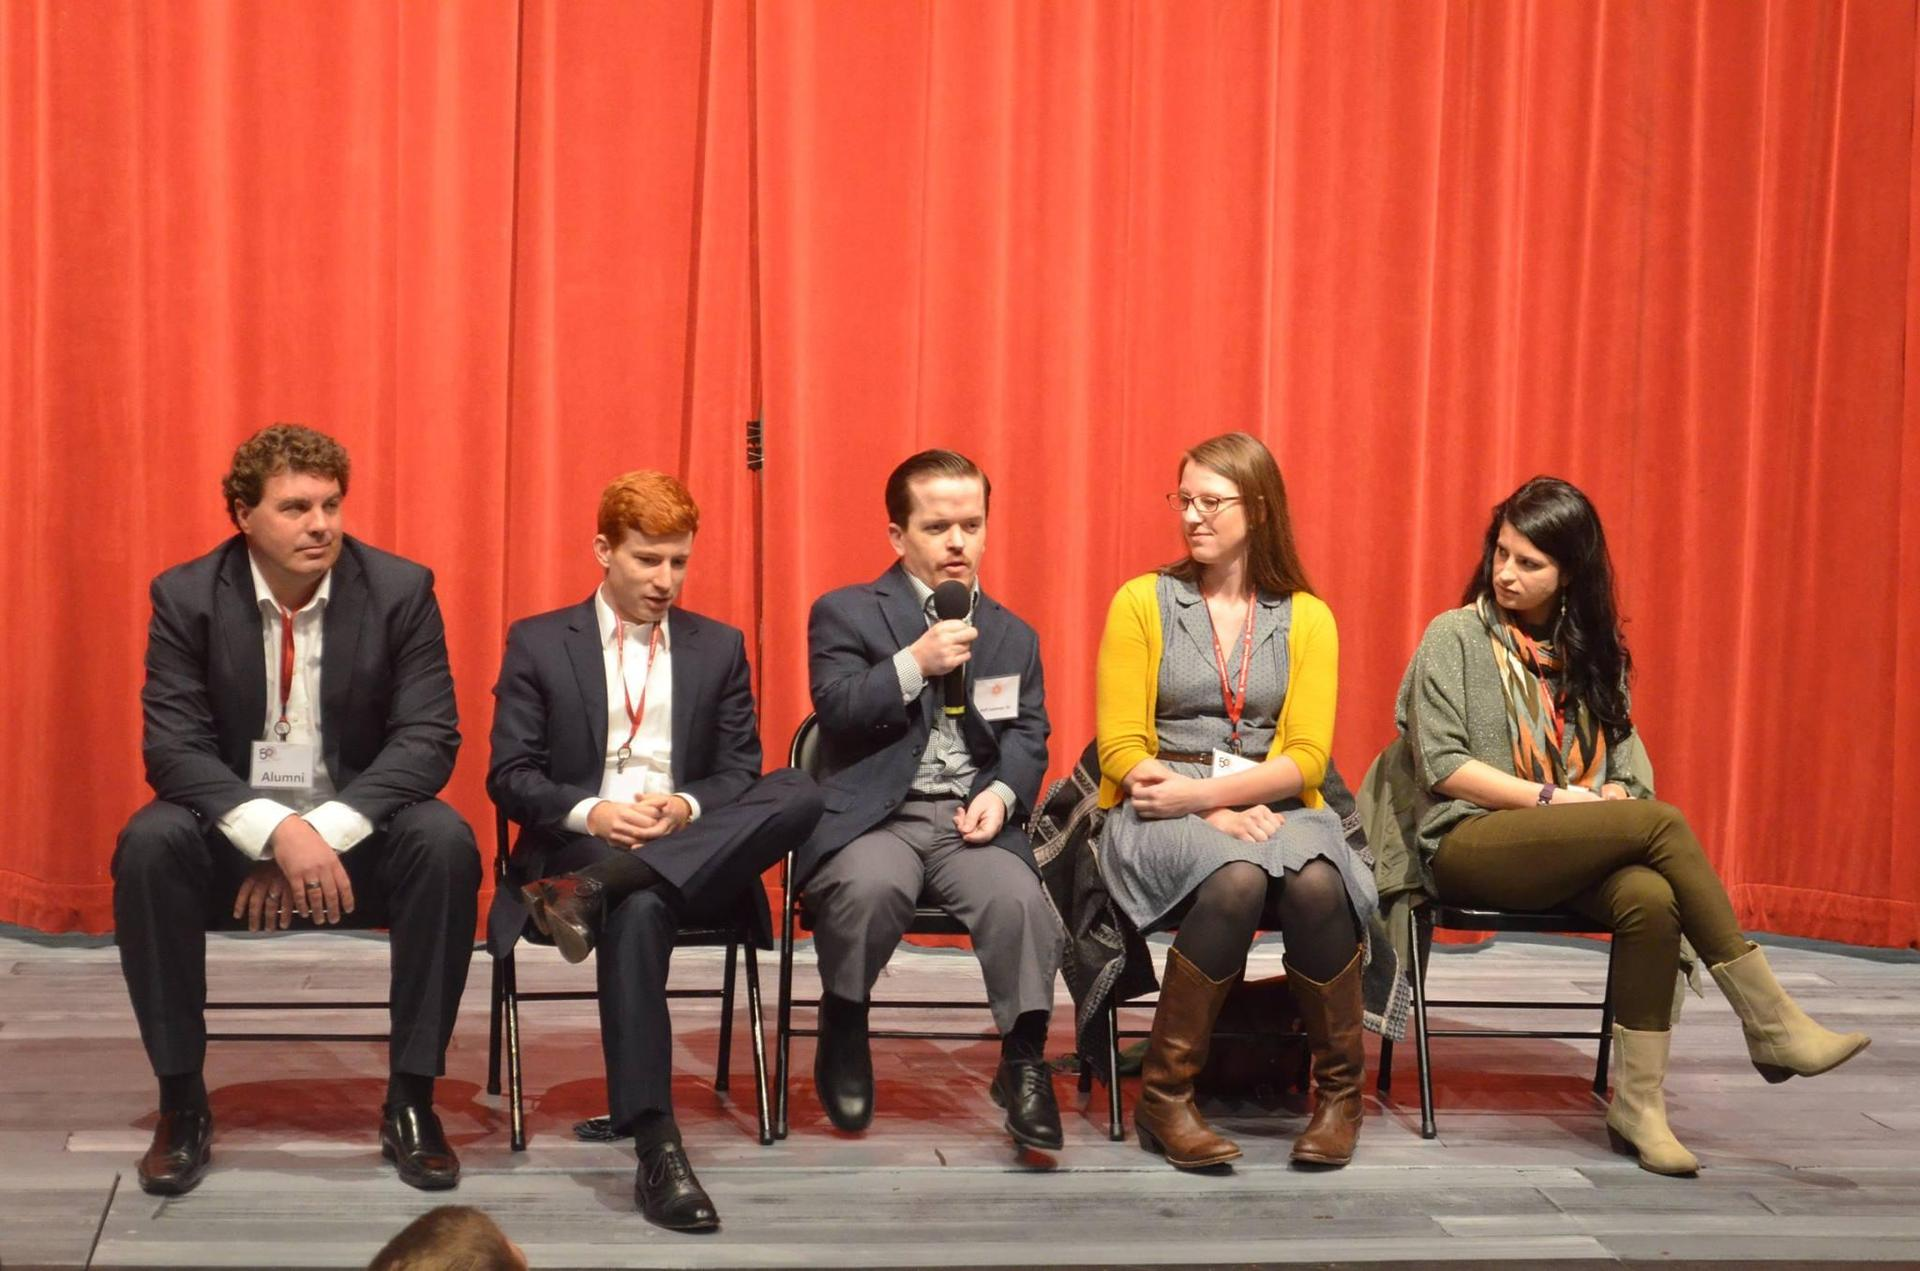 Prep's Young Committee has hosted several 'Alumni Voices' discussion panels through the years.